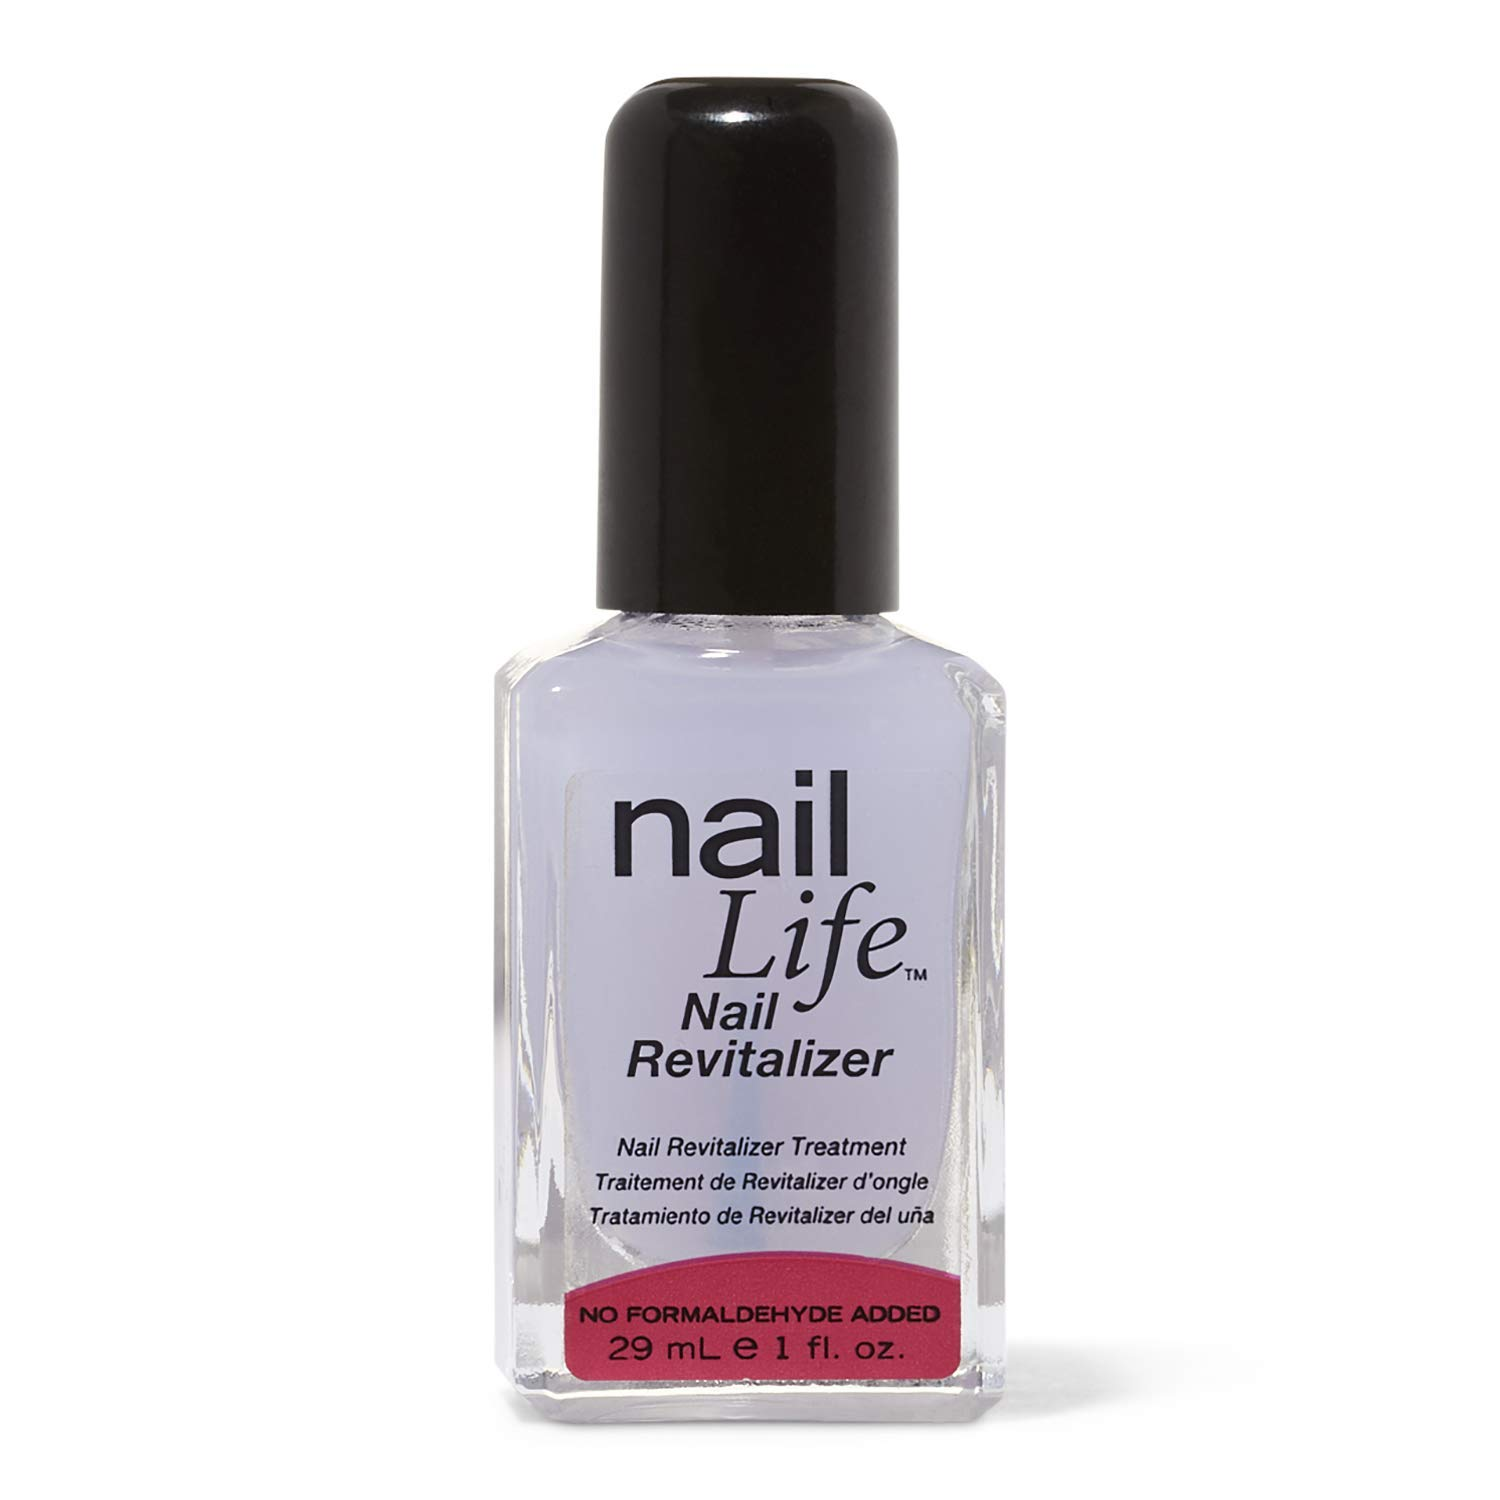 Formaldehyde Free Nail Revitalizer by Nail Life